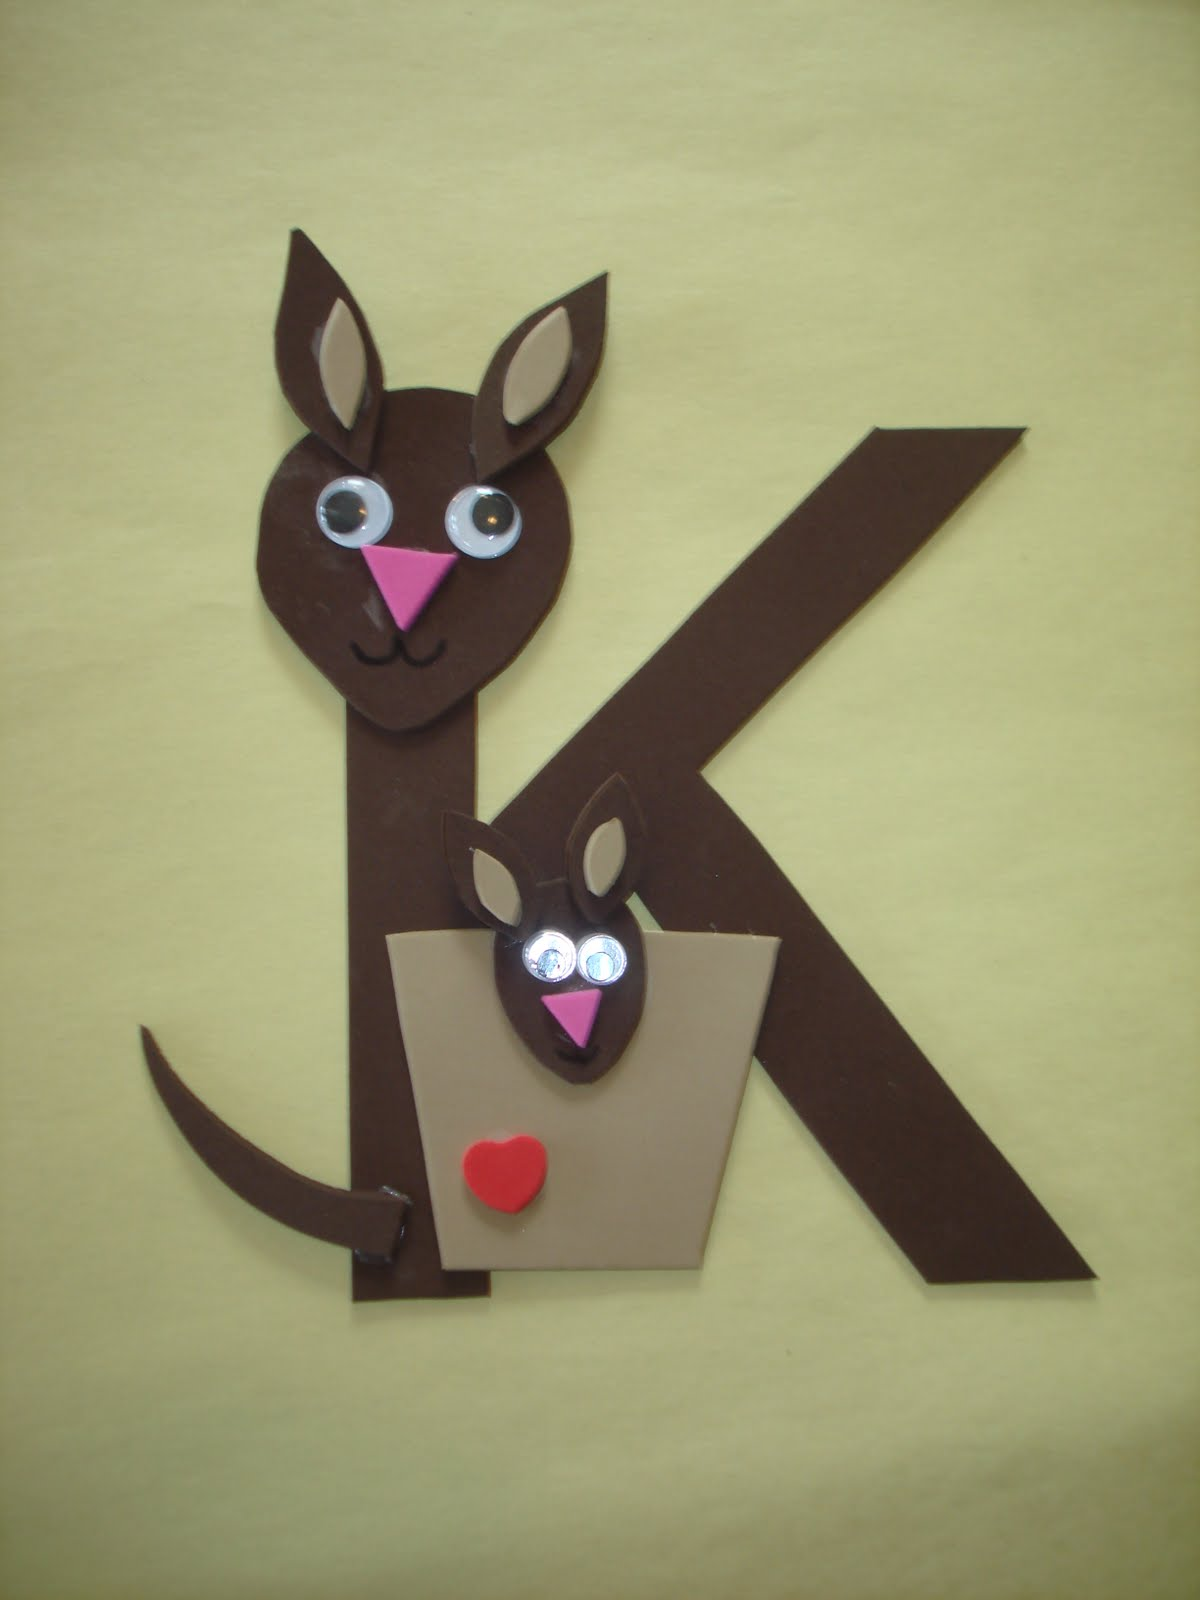 Arts and crafts for 3 year old - Letter K Kangaroo Craft Christmas Art 3 Year Olds